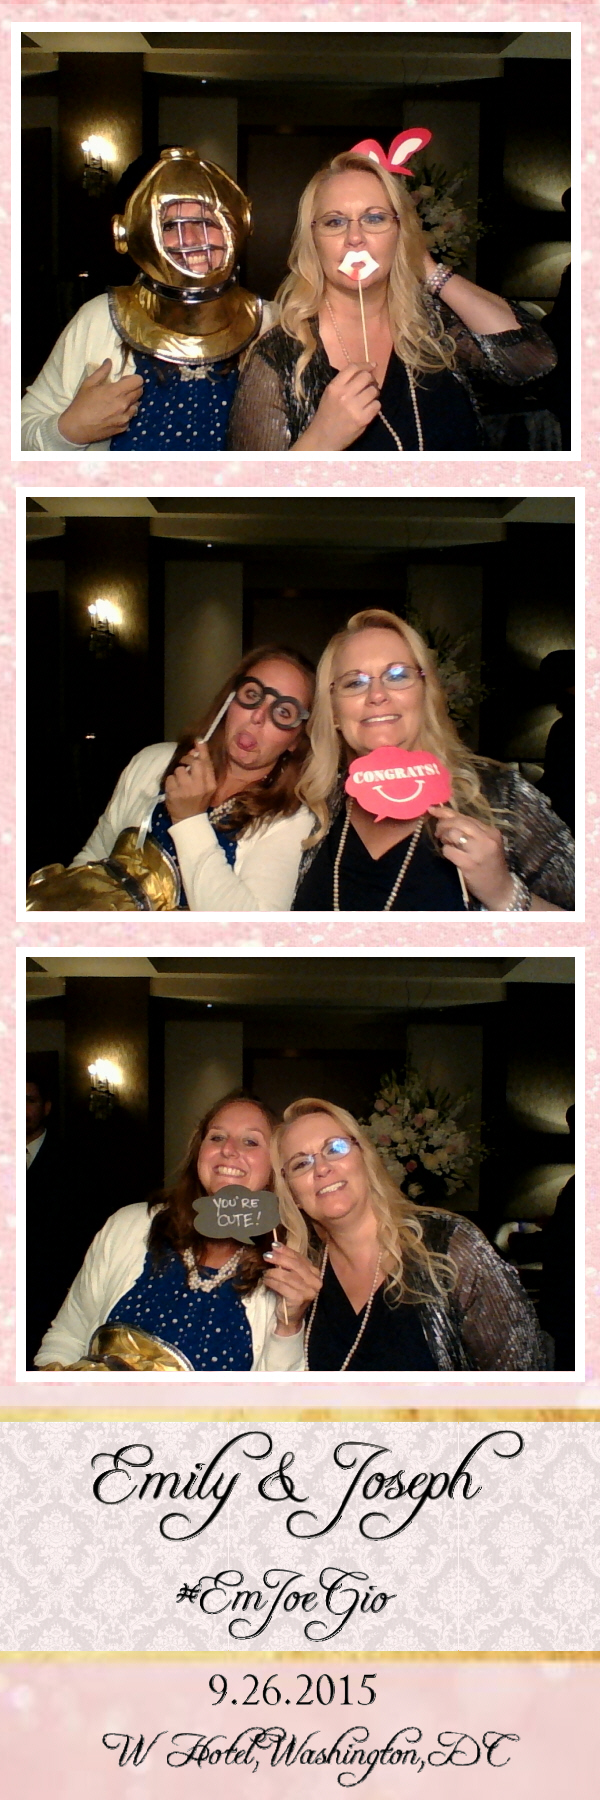 Guest House Events Photo Booth E&J (20).jpg